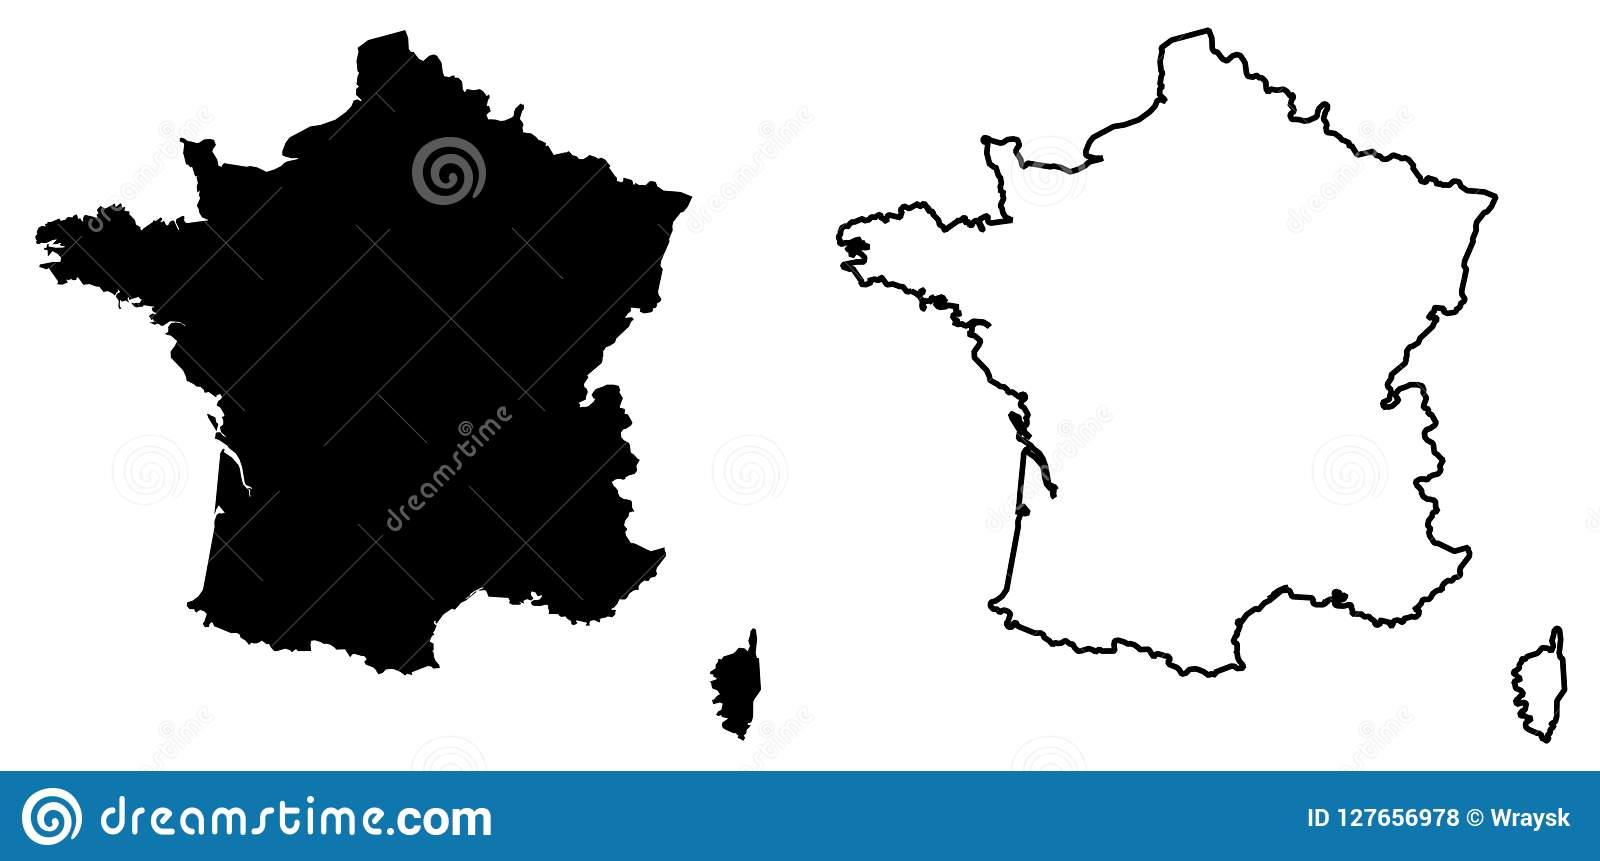 Map Of France Outline Only.Simple Only Sharp Corners Map Of France Vector Drawing Mercat Stock